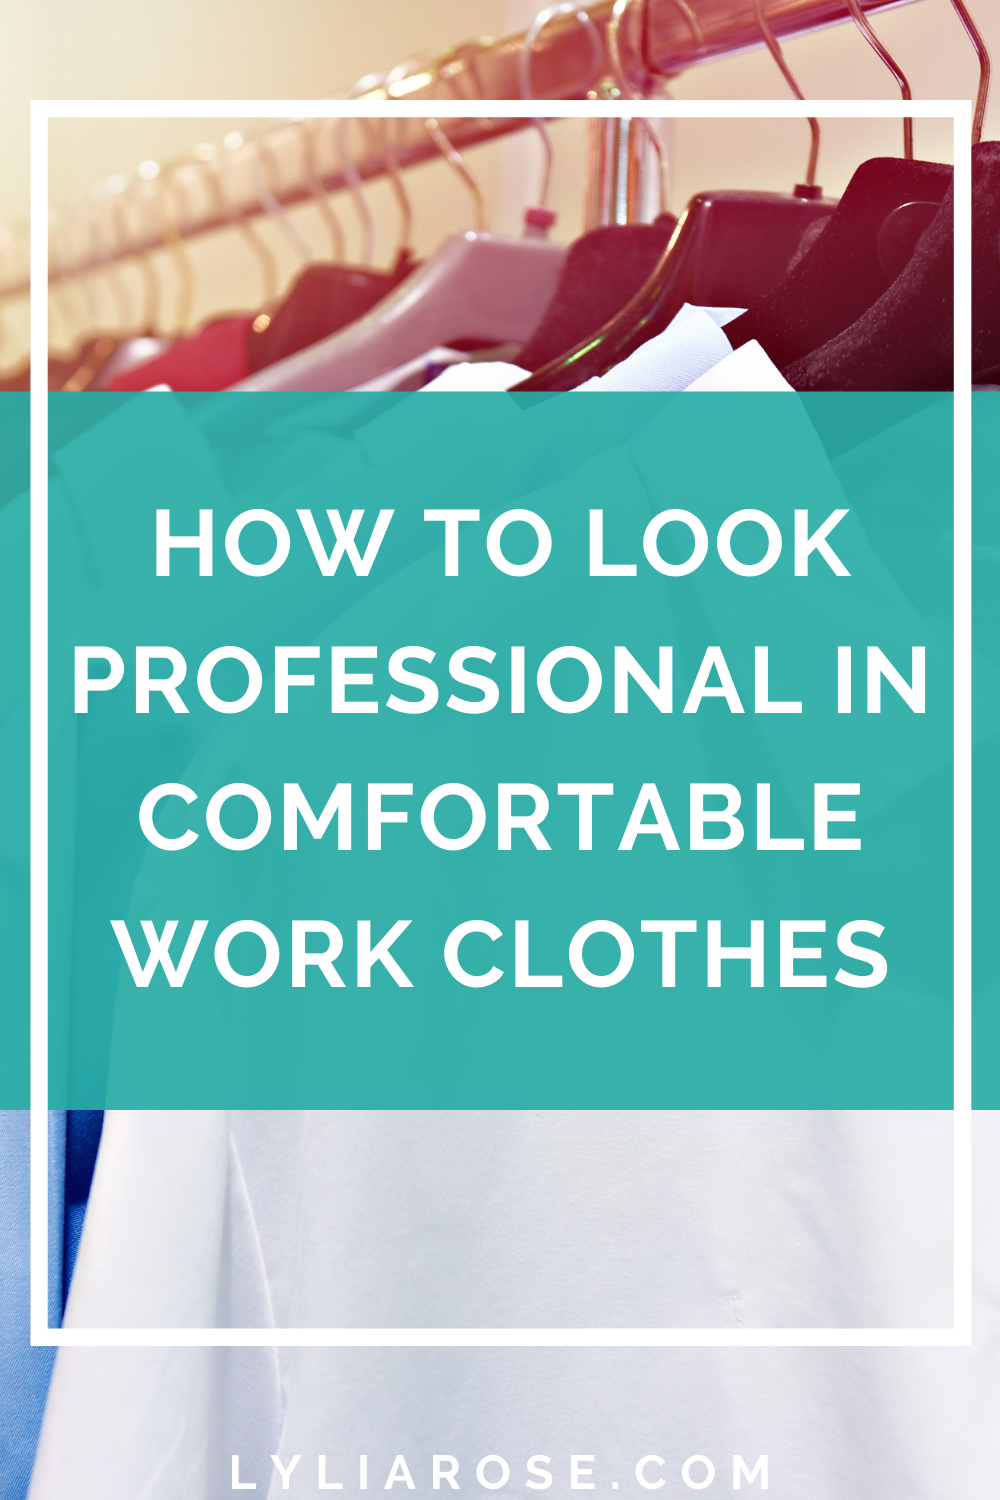 How to look professional in comfortable work clothes